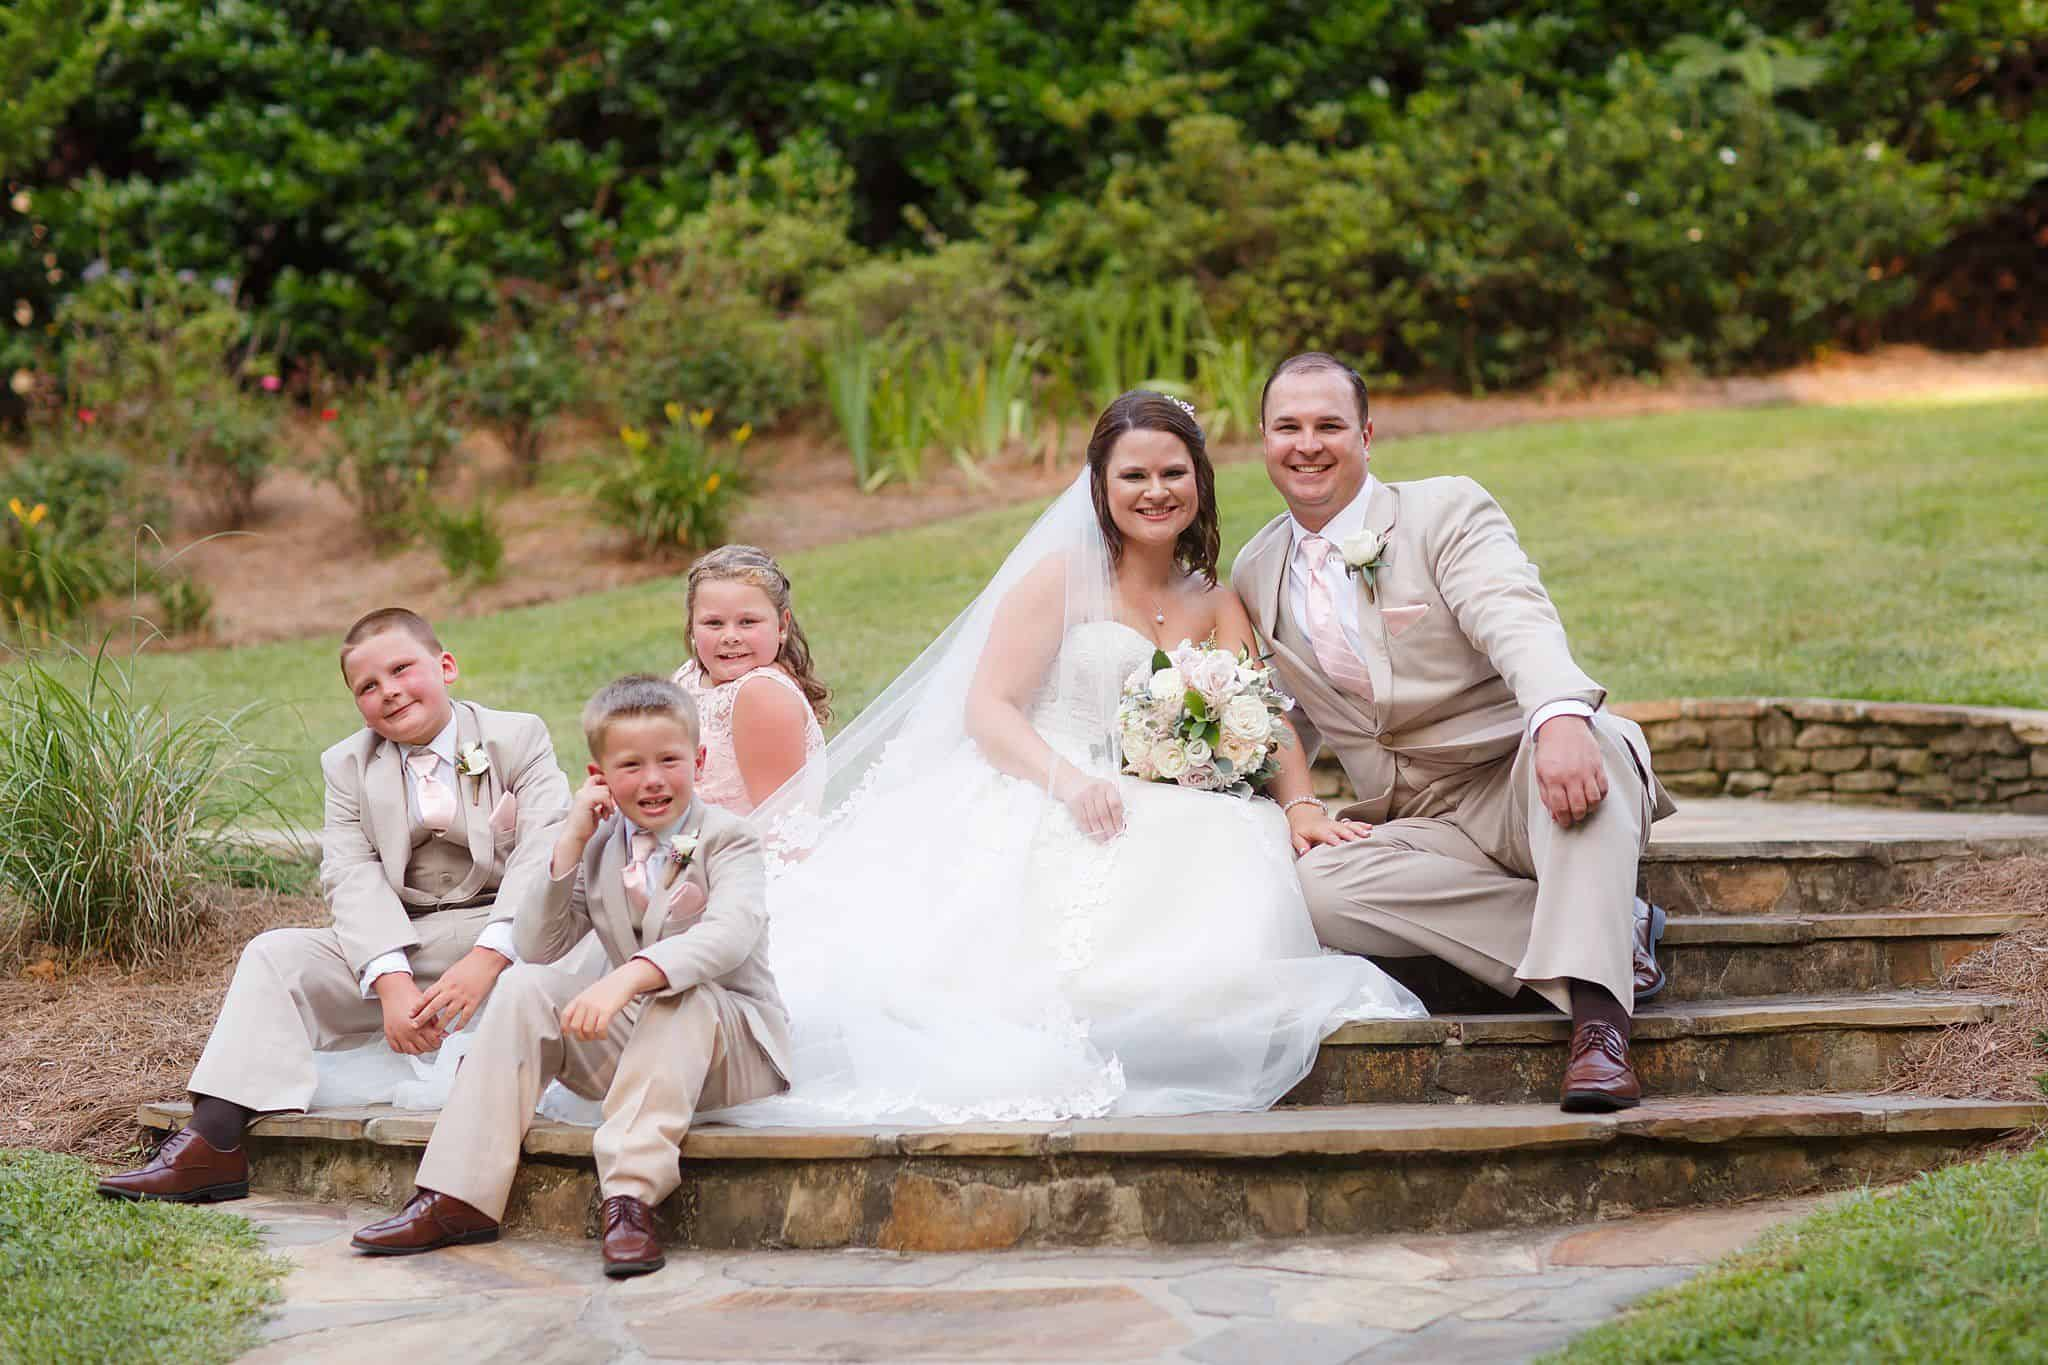 Bride and Groom sitting down with two boys and flowergirl on paved steps outdoors